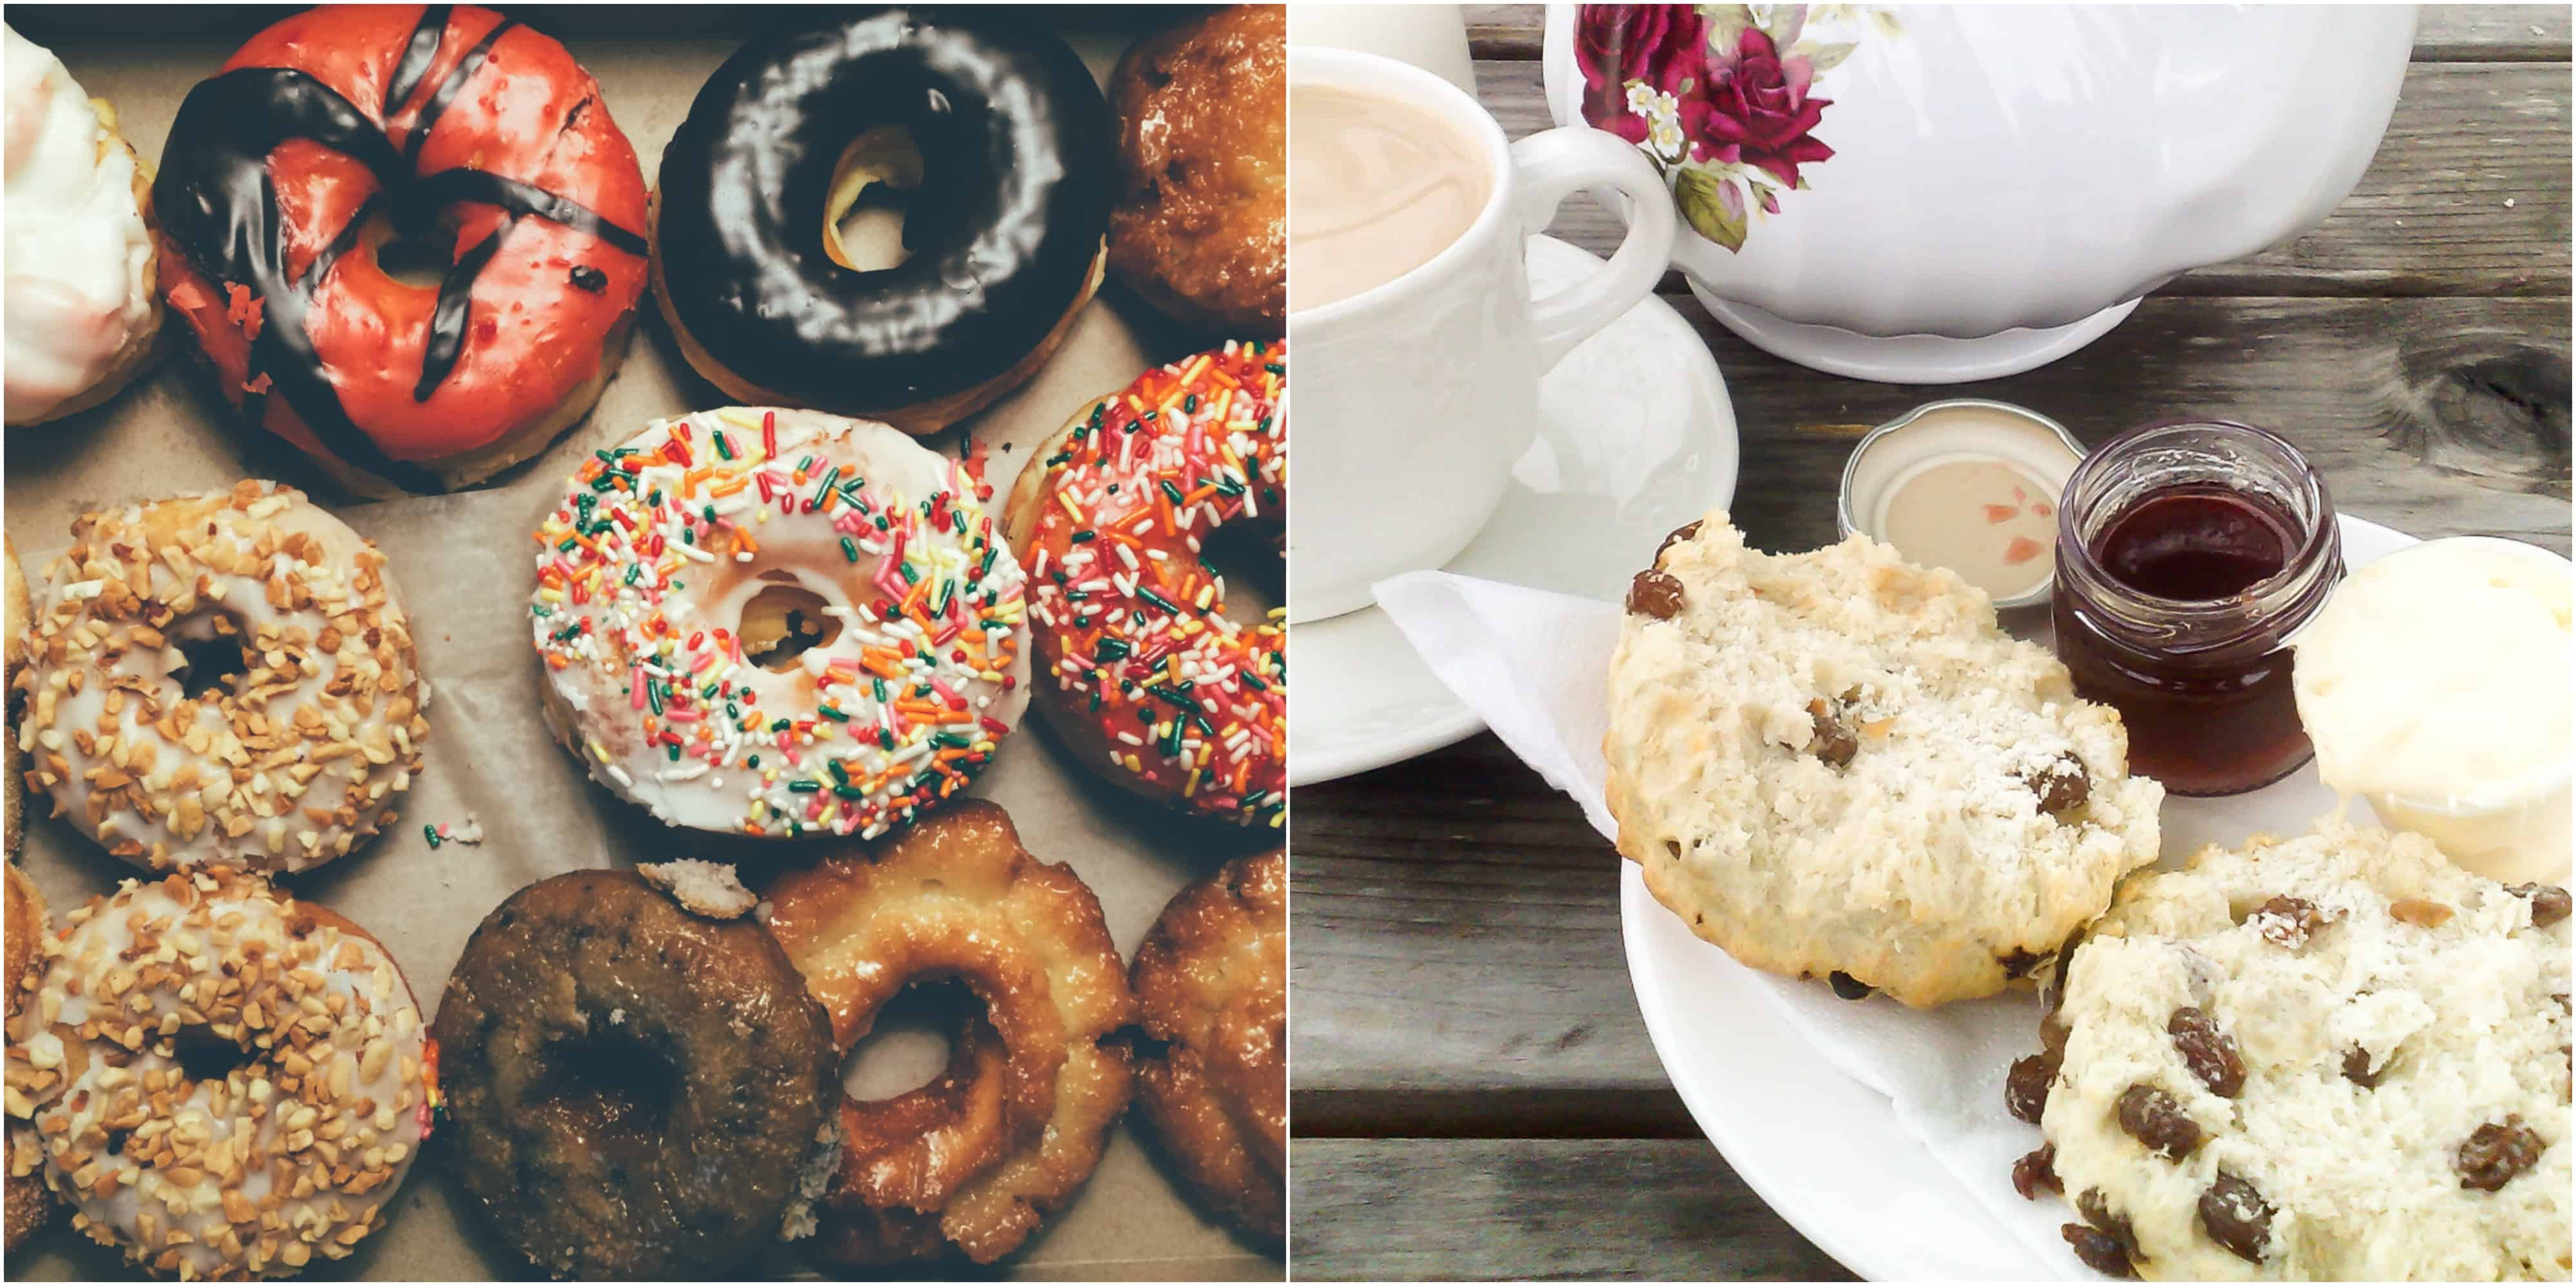 California Donuts to English tea and scones